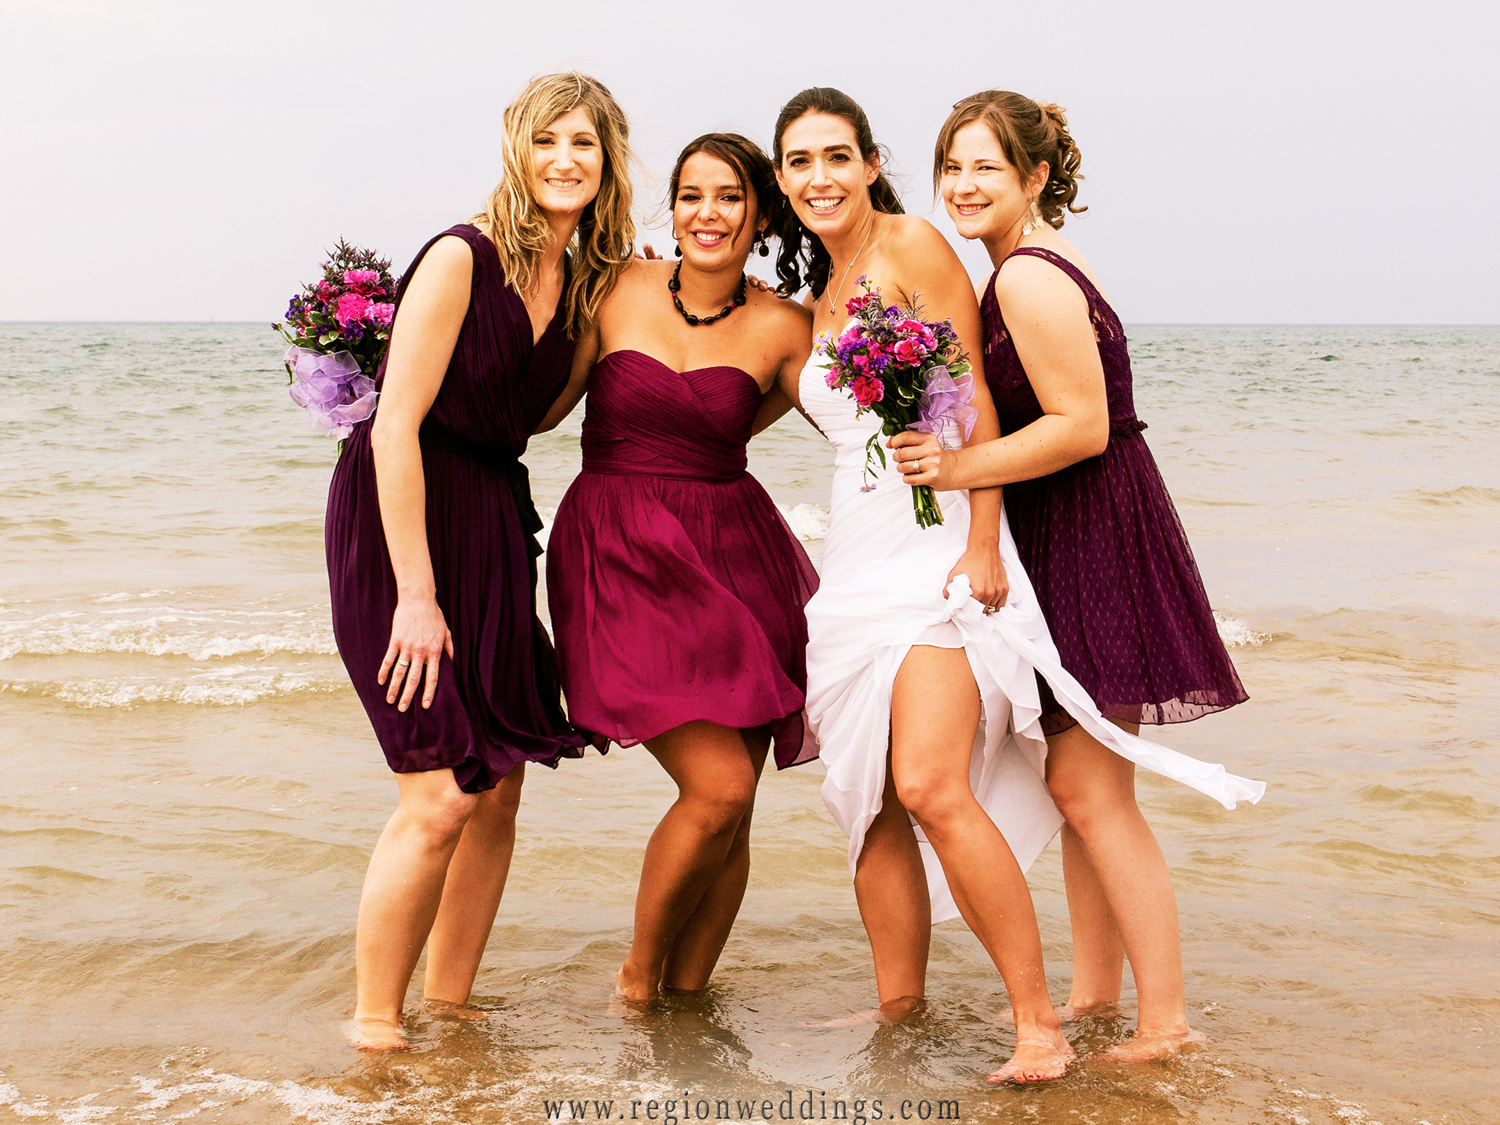 Bridesmaids step into Lake Michigan in their dresses for a wedding photo.